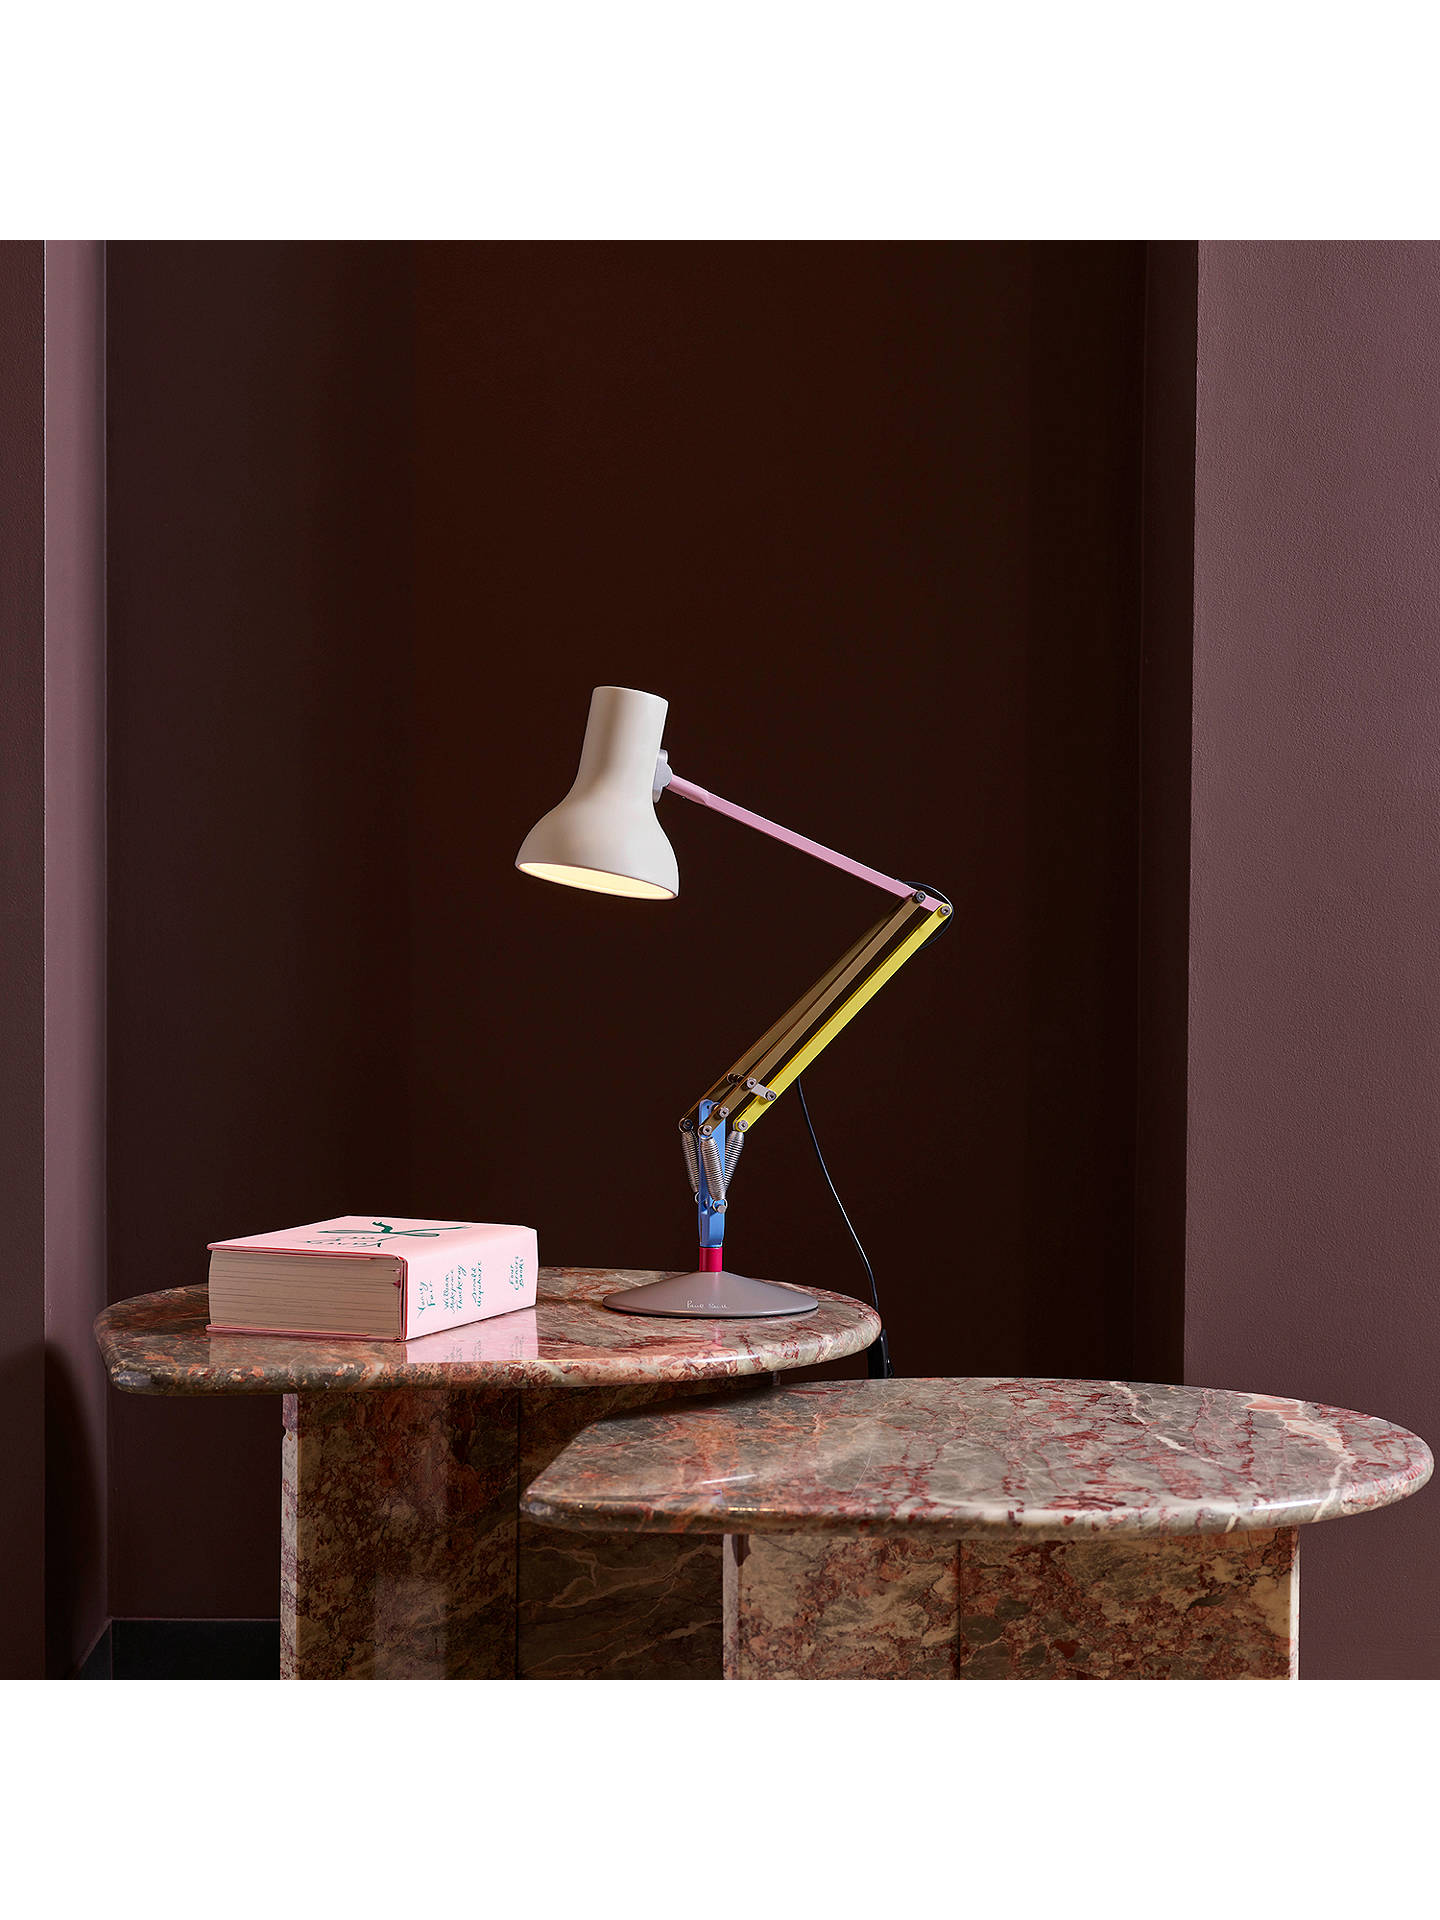 BuyAnglepoise + Paul Smith Type 75 Mini Desk Lamp, Edition 1 Online at johnlewis.com